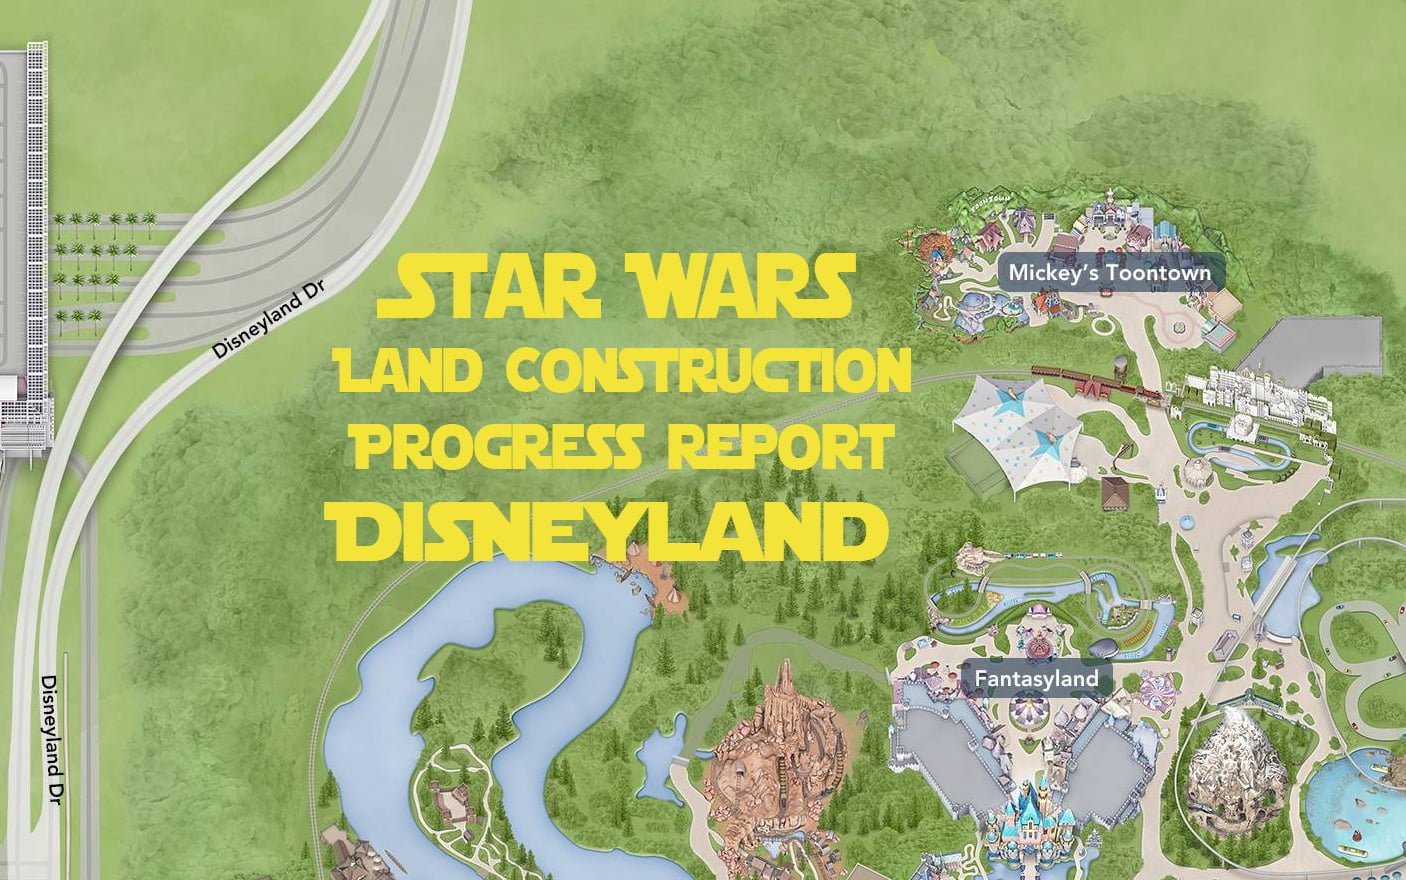 Star wars land construction update disney tourist blog star wars land construction progress report disneyland publicscrutiny Images